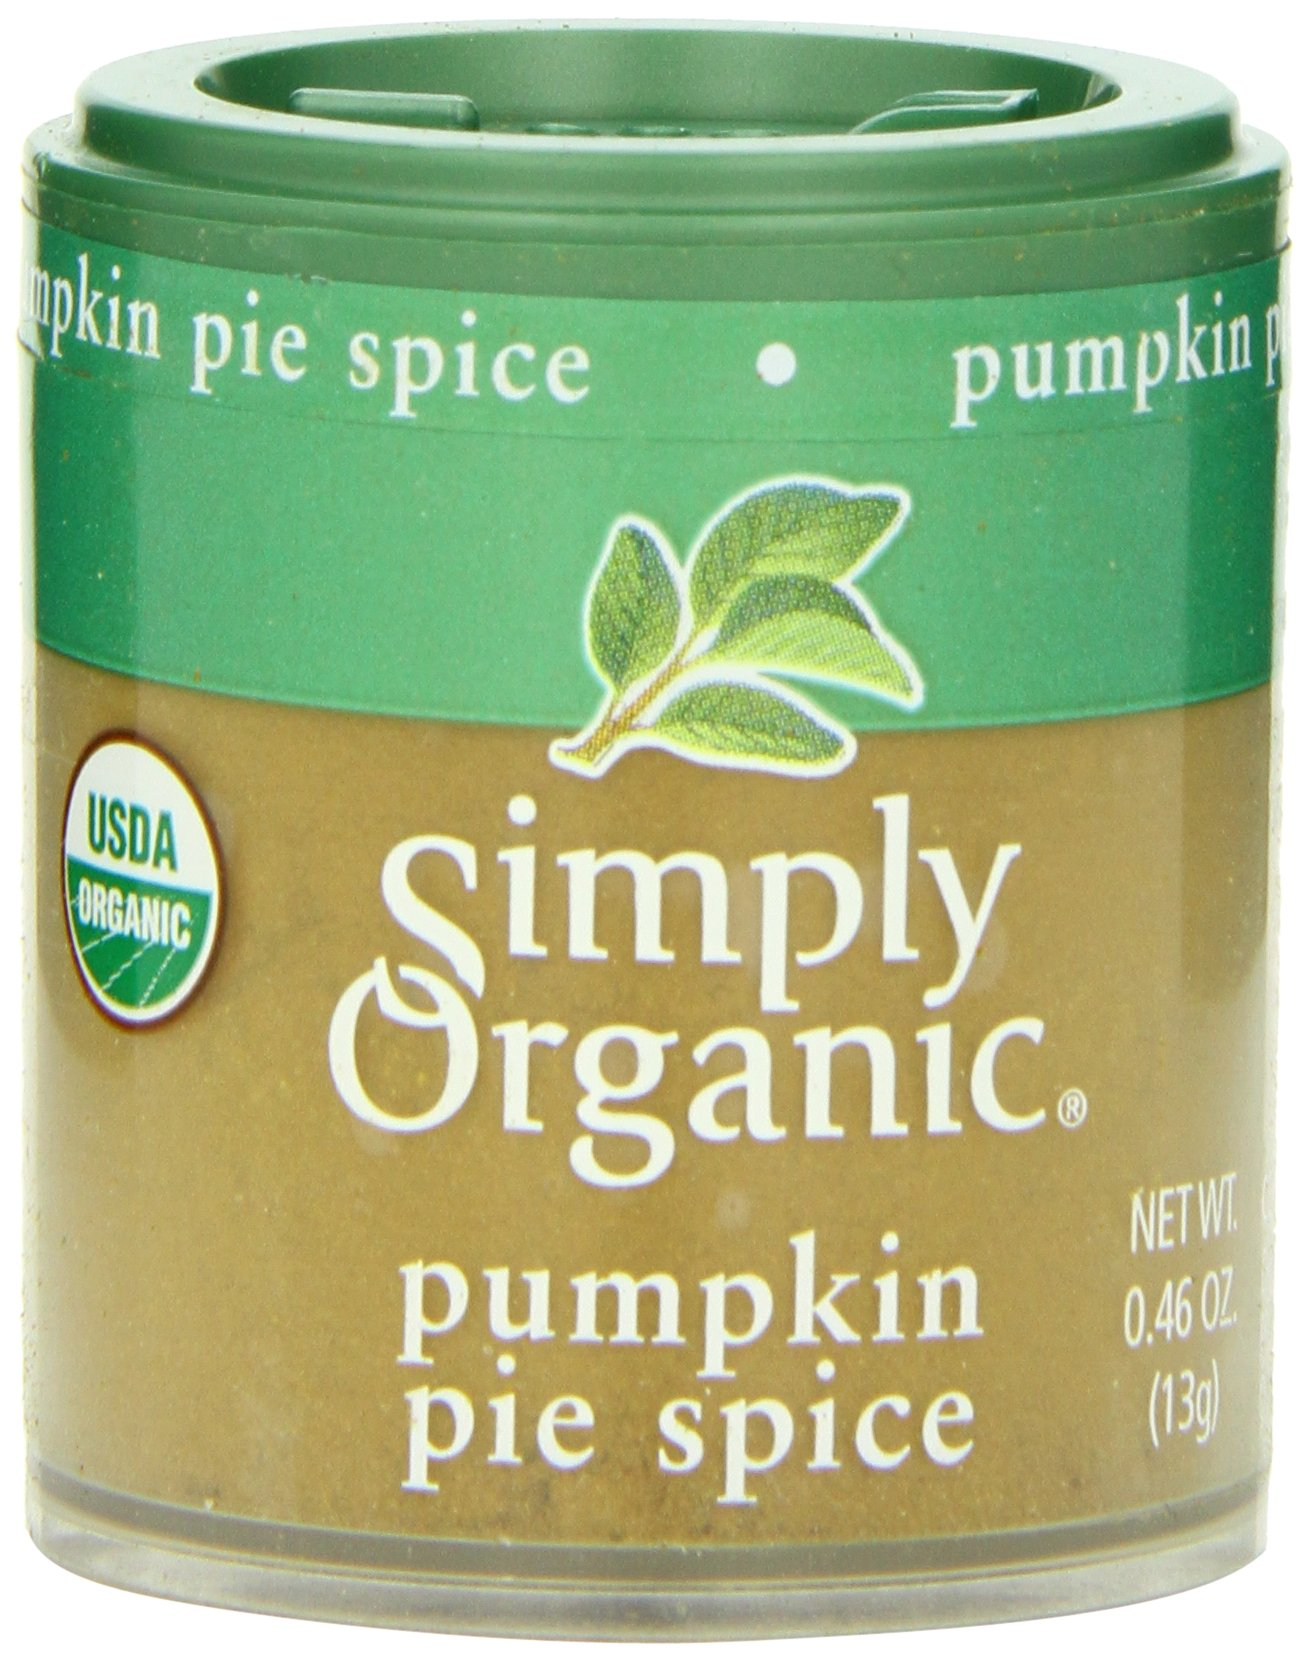 Simply Organic Pumpkin Pie Spice, Mini Spice, 0.46 Ounce (Pack of 6)